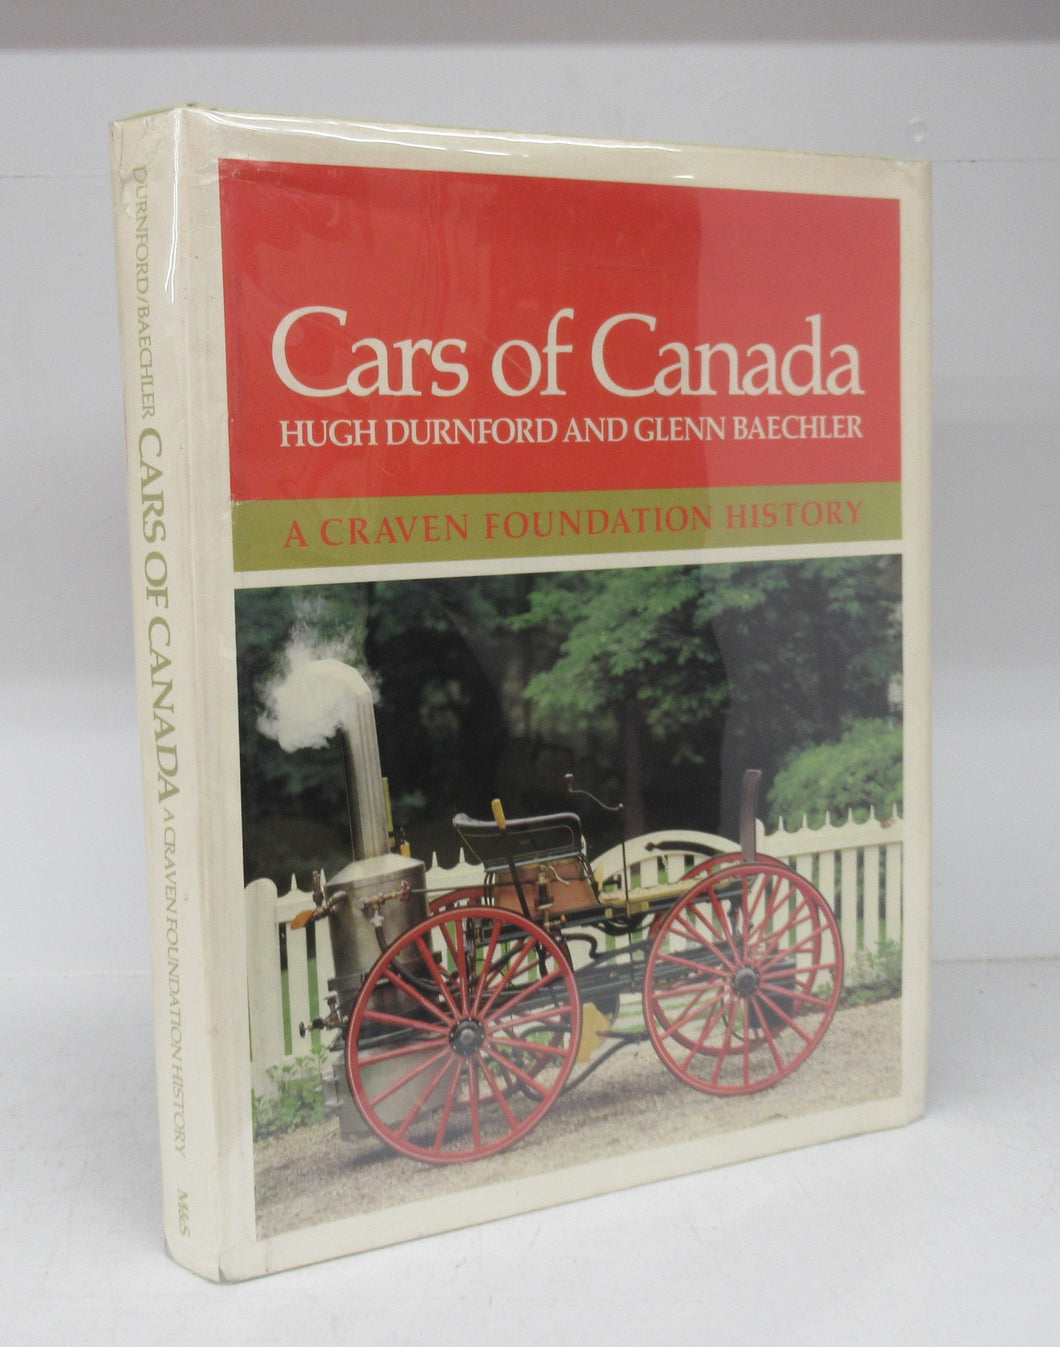 Cars of Canada: A Craven Foundation History